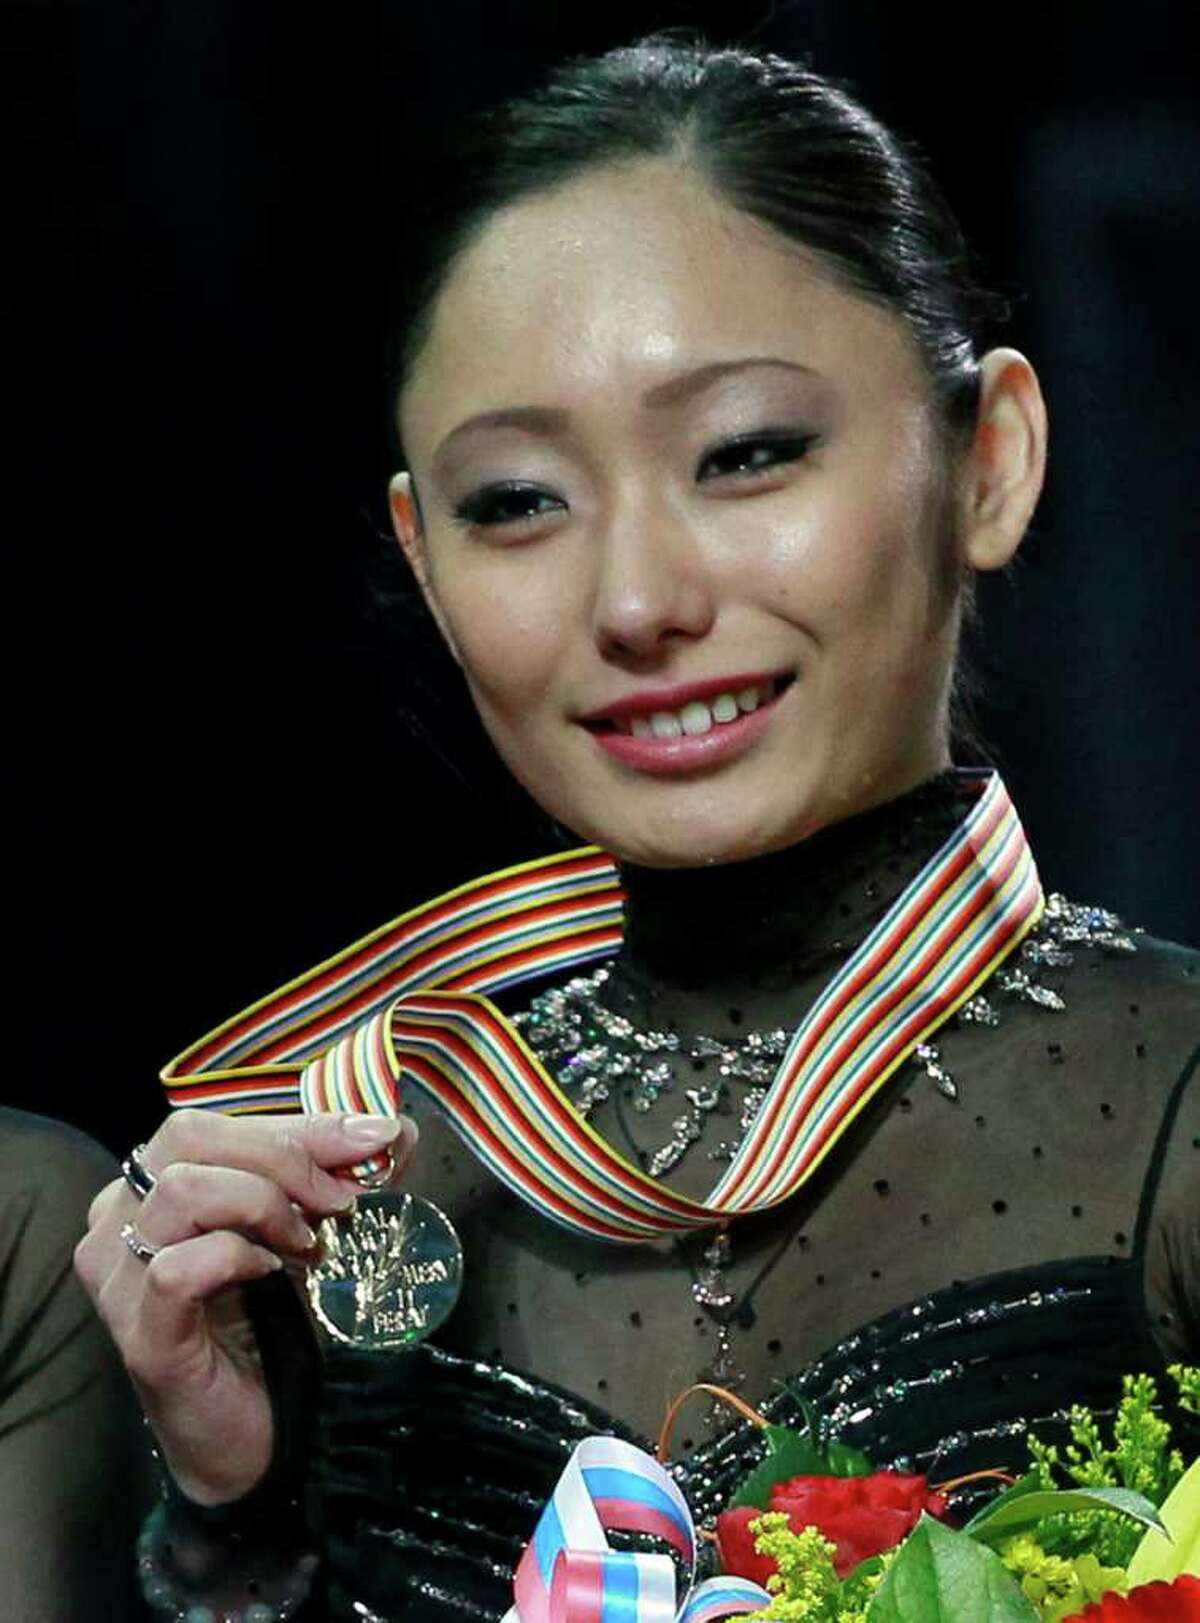 Japan's Miki Ando shows off her gold medal after performing her free program at the ISU Figure Skating World championships in Moscow, Russia, Saturday, April 30, 2011. (AP Photo/Dmitry Lovetsky)